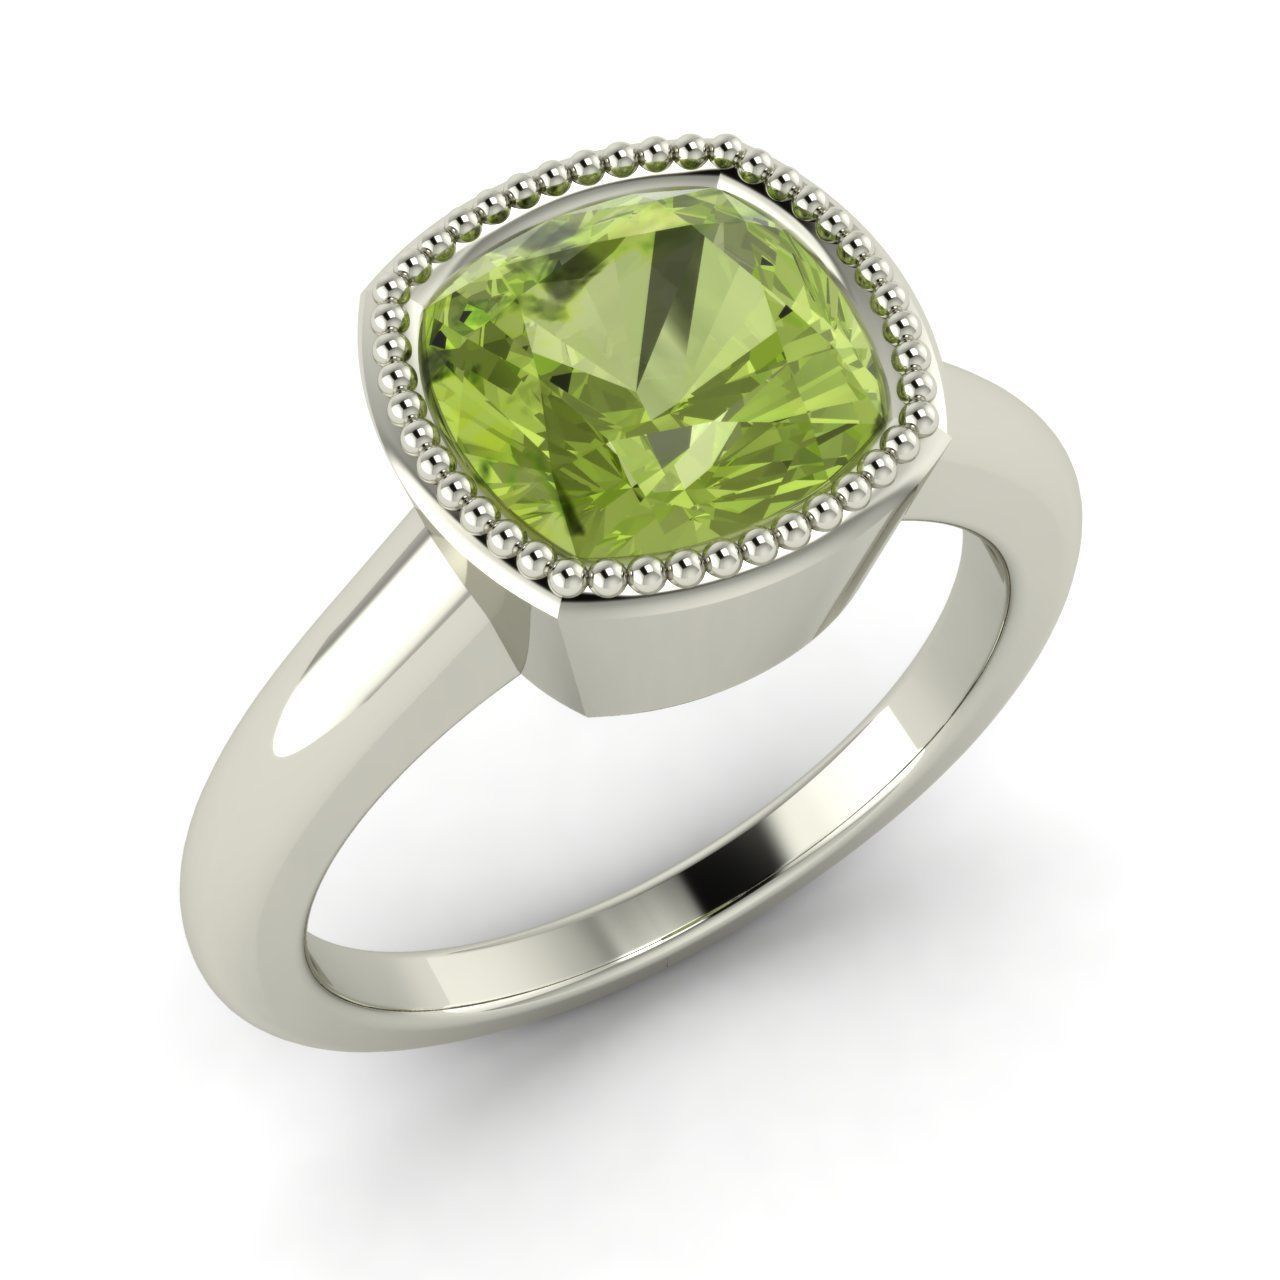 qitok product diamond white ben of rings moss jewellers ring engagement pagespeed image ic gold large peridot